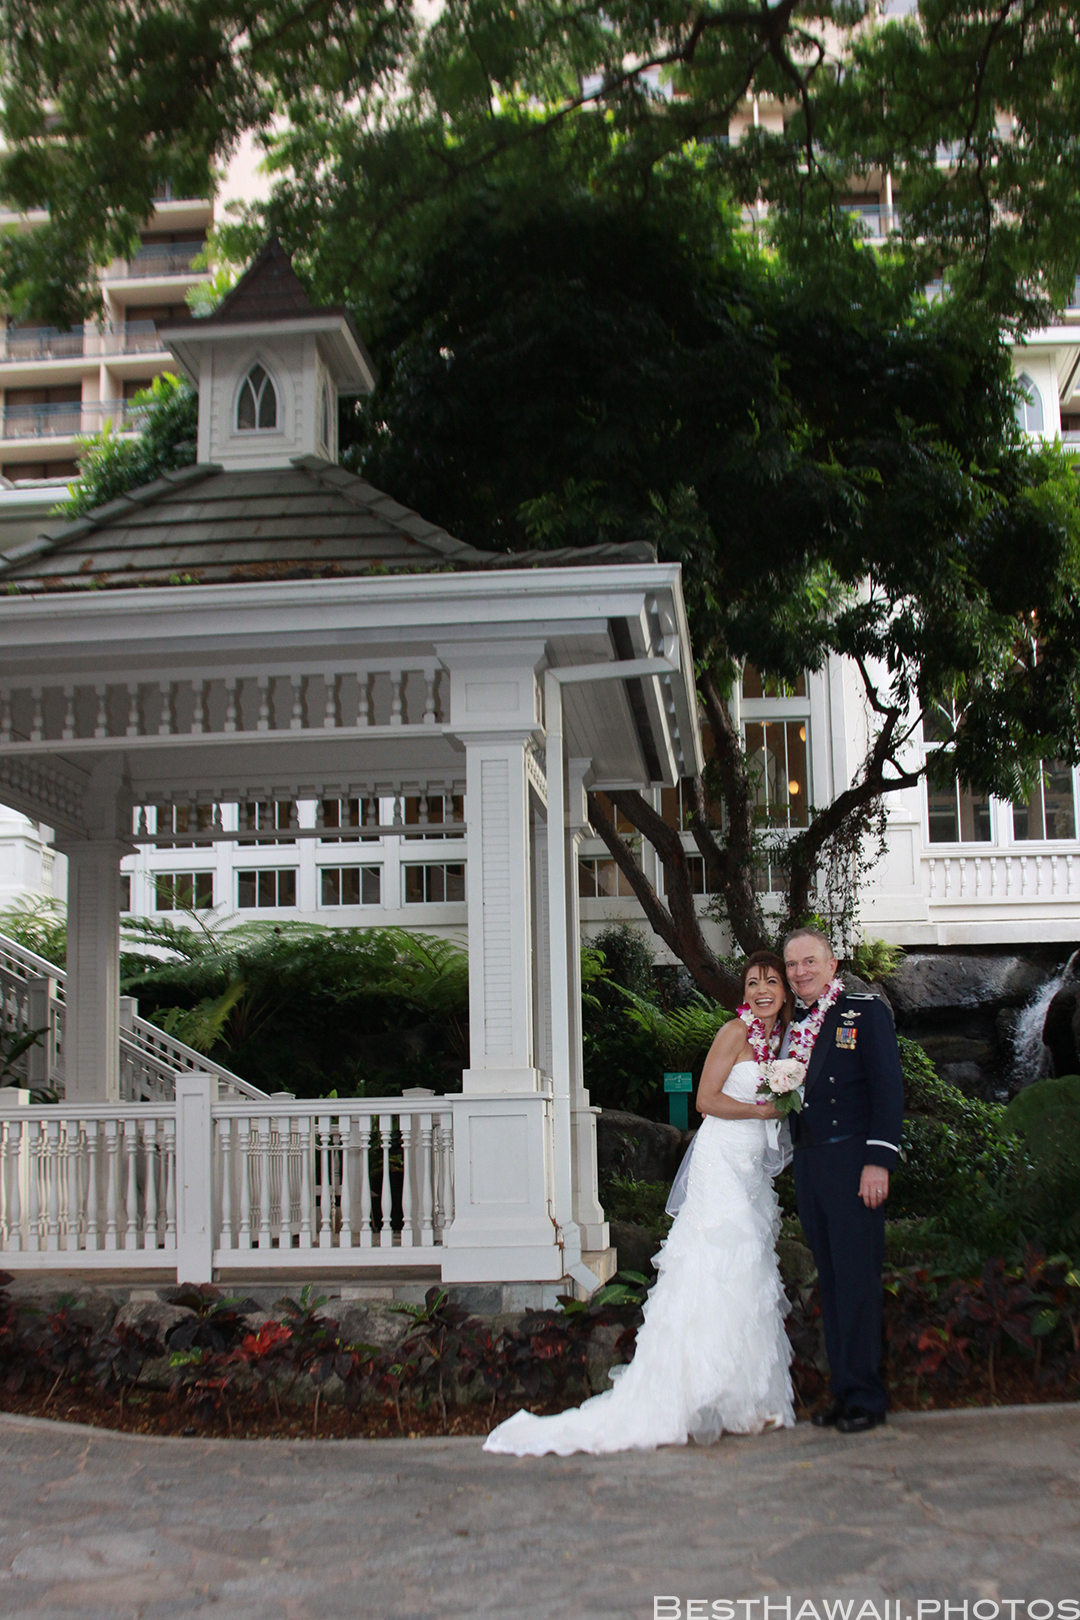 Wedding Photos at Hilton Hawaiian Village by Pasha www.BestHawaii.photos 121820158664